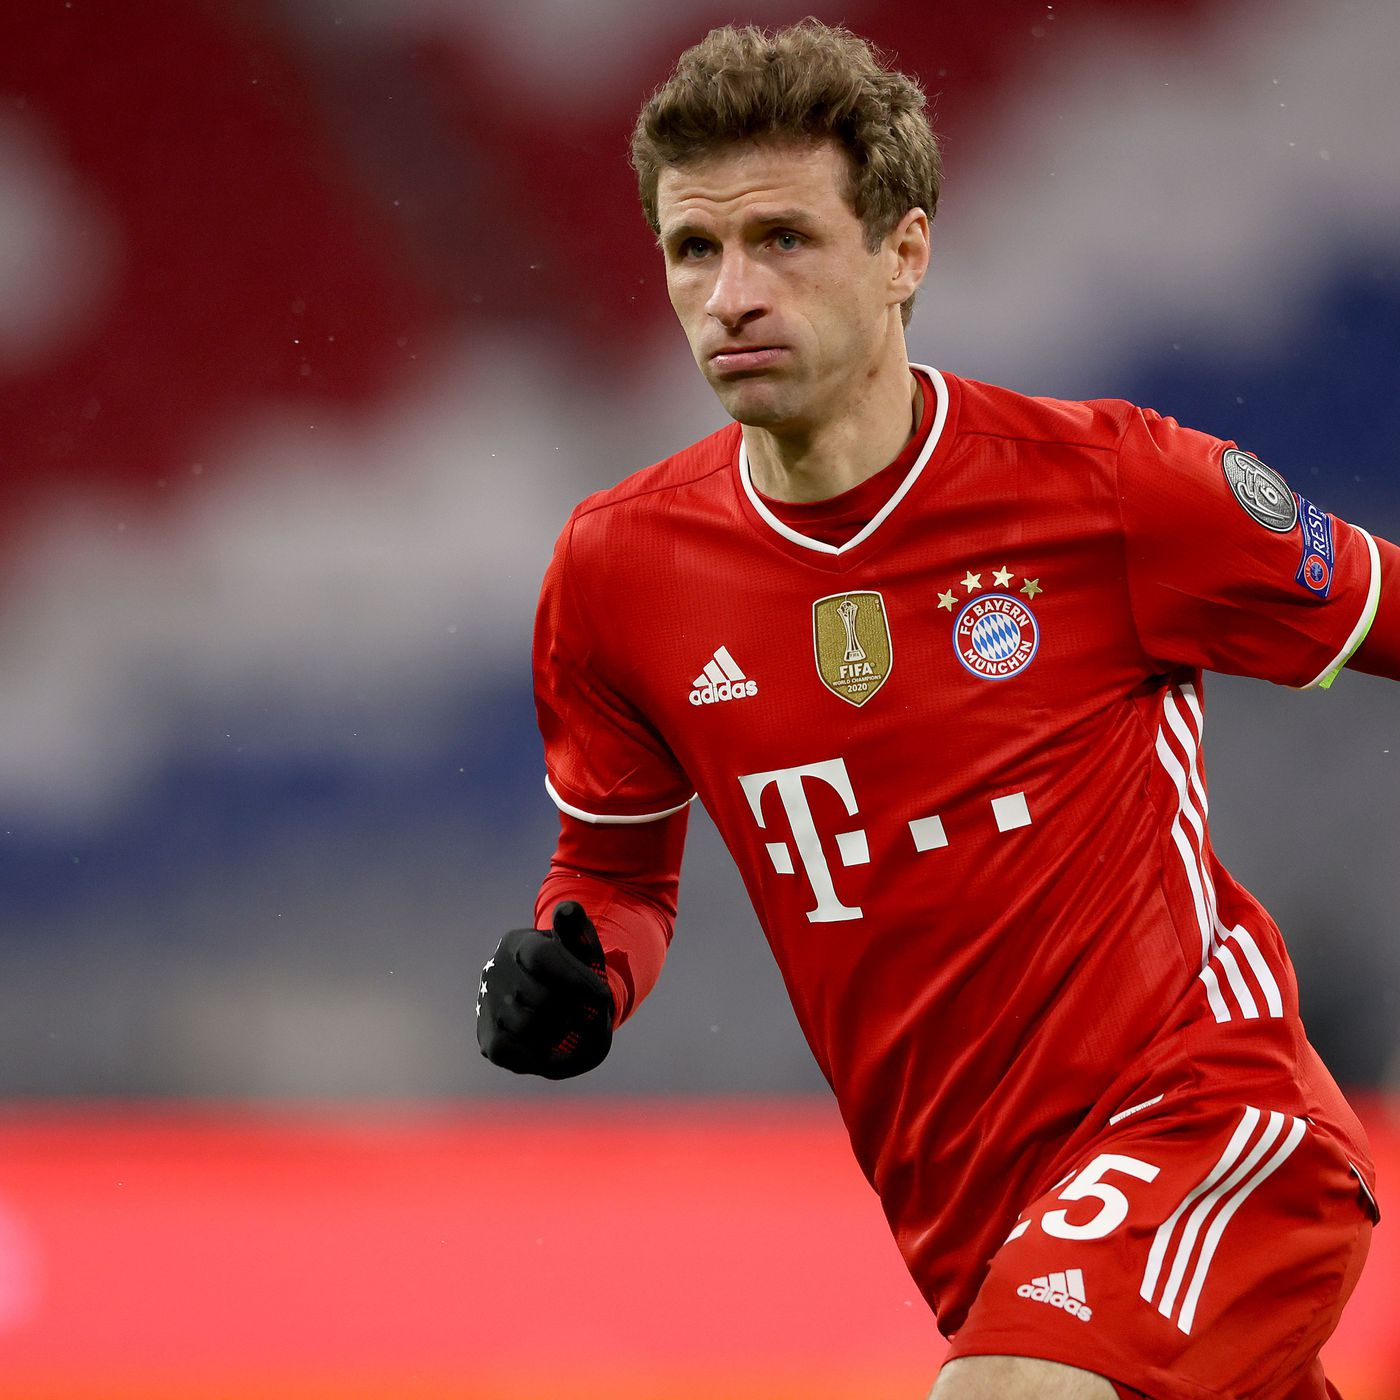 Thomas Müller still hopeful of playing for Germany this summer at the Euros  - Bavarian Football Works